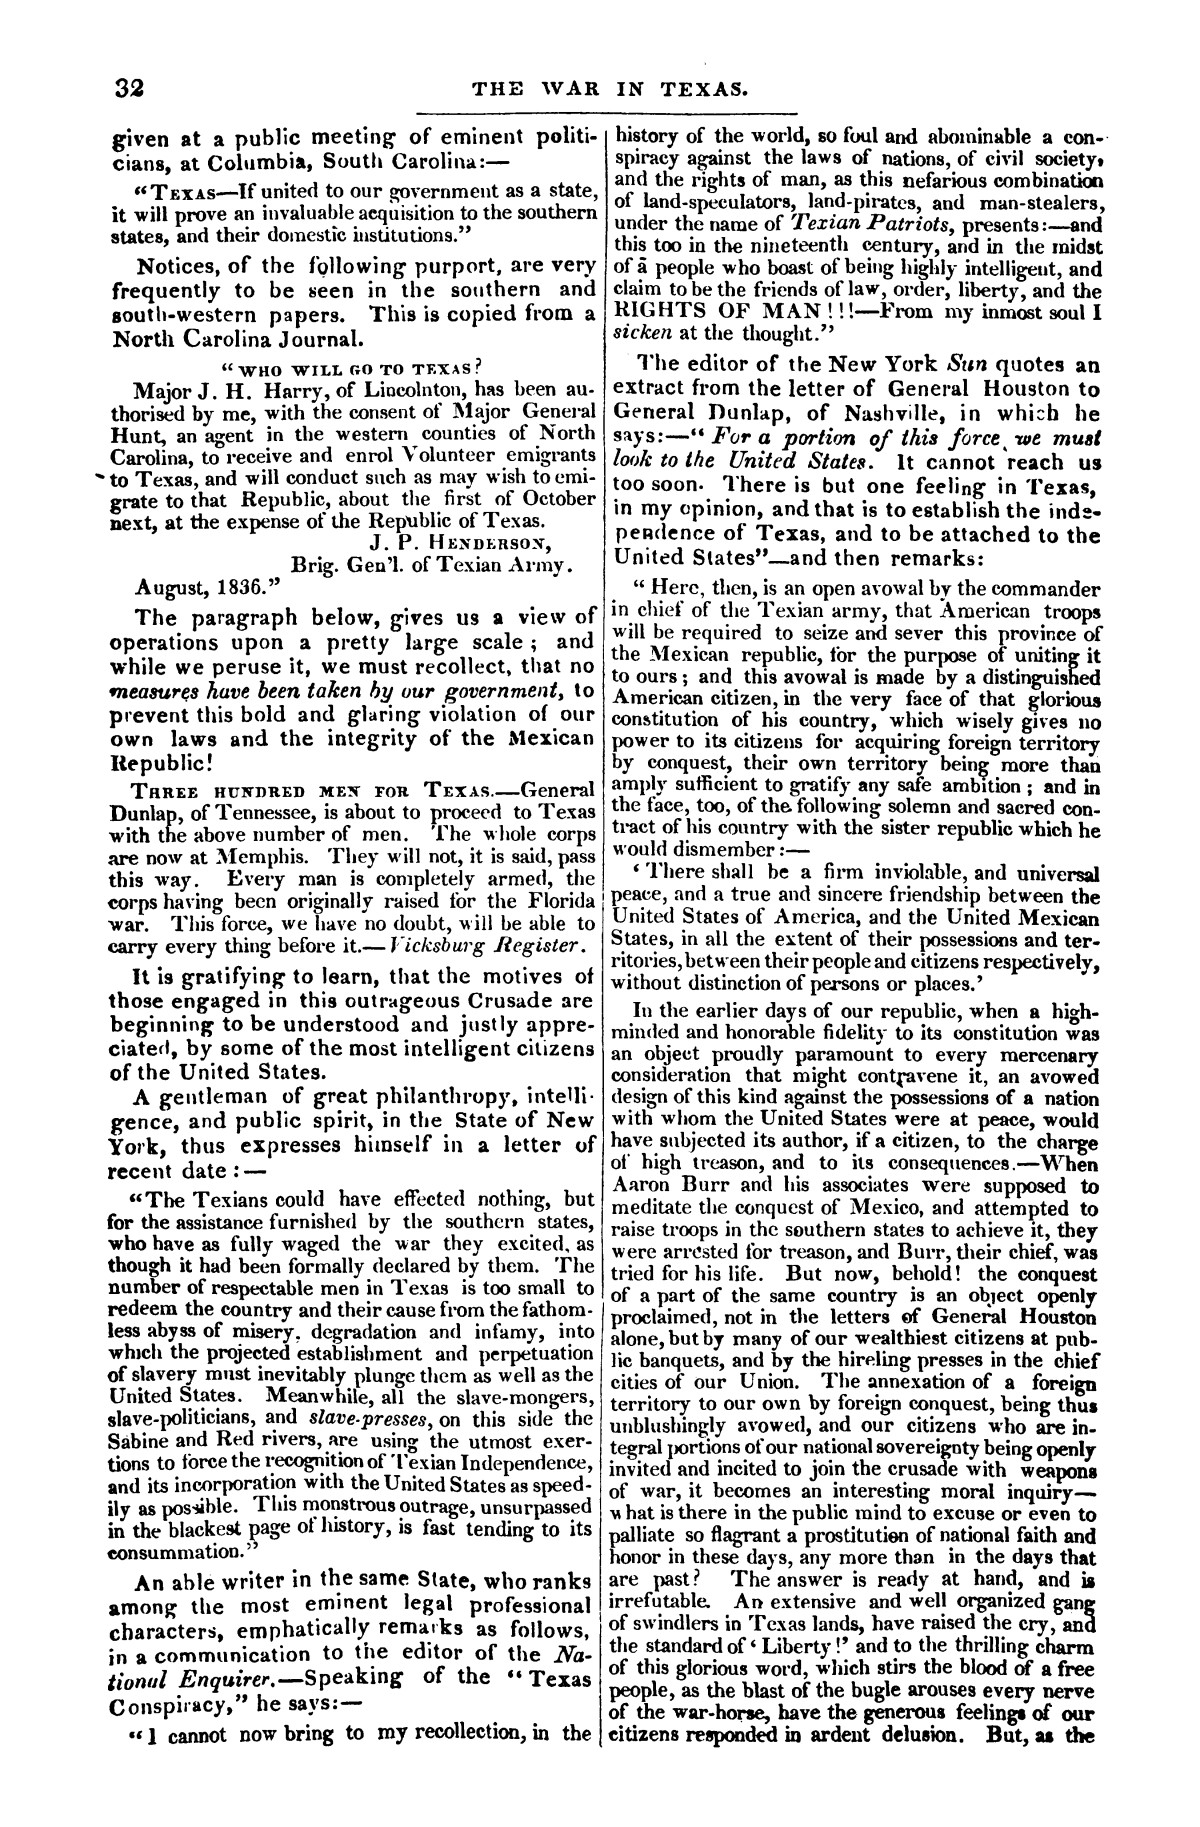 The war in Texas; a review of facts and circumstances, showing that this contest is a crusade against Mexico, set on foot by slaveholders, land speculators, & c. in order to re-establish, extend, and perpetuate the system of slavery and the slave trade.                                                                                                      [Sequence #]: 32 of 64